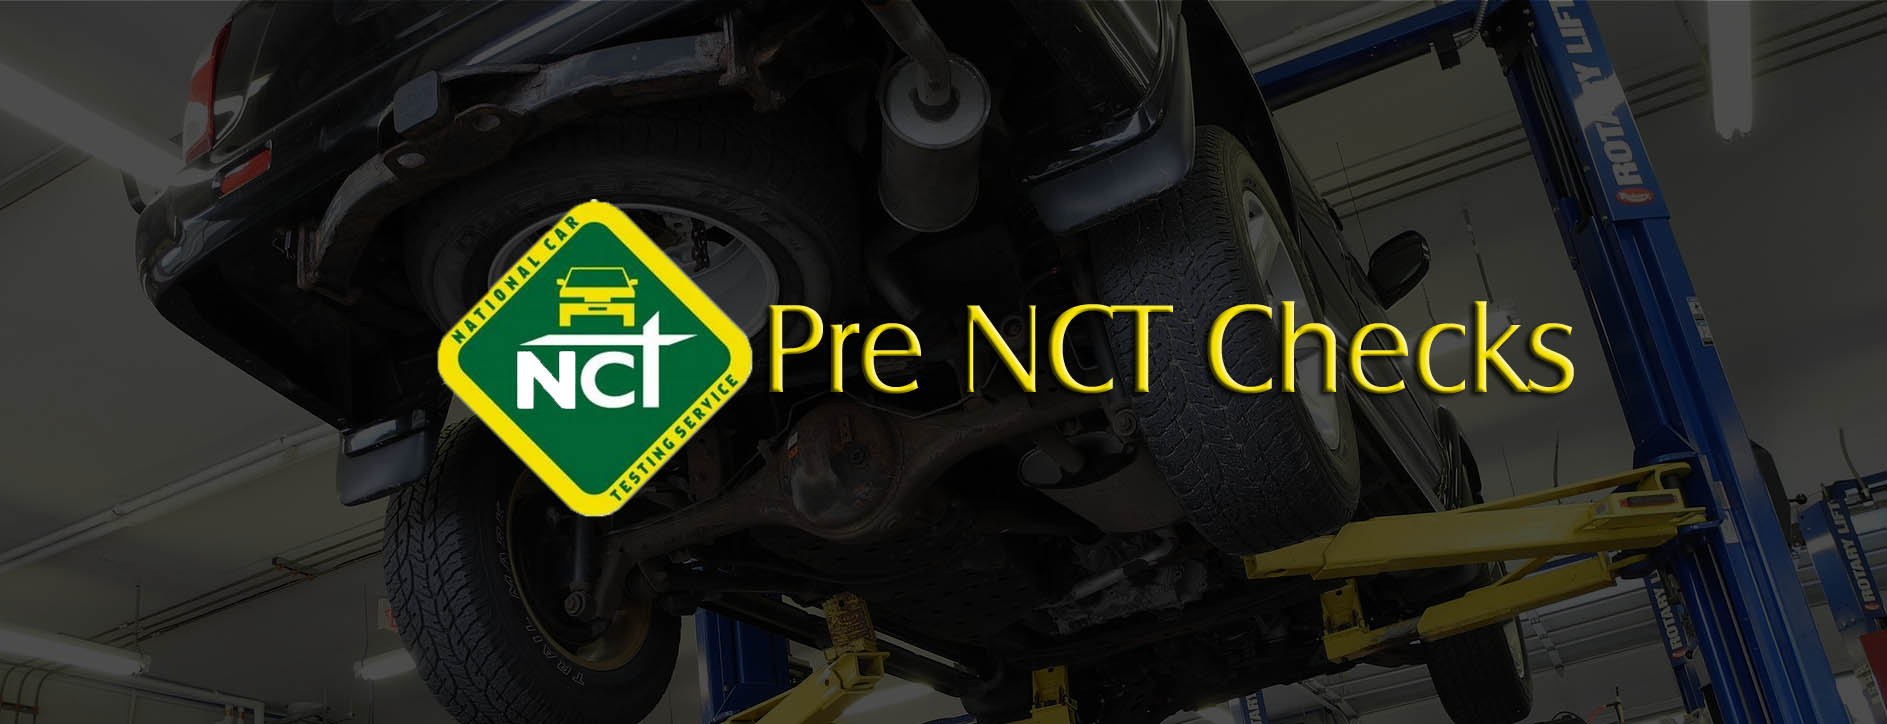 pre nct checks waterford header image